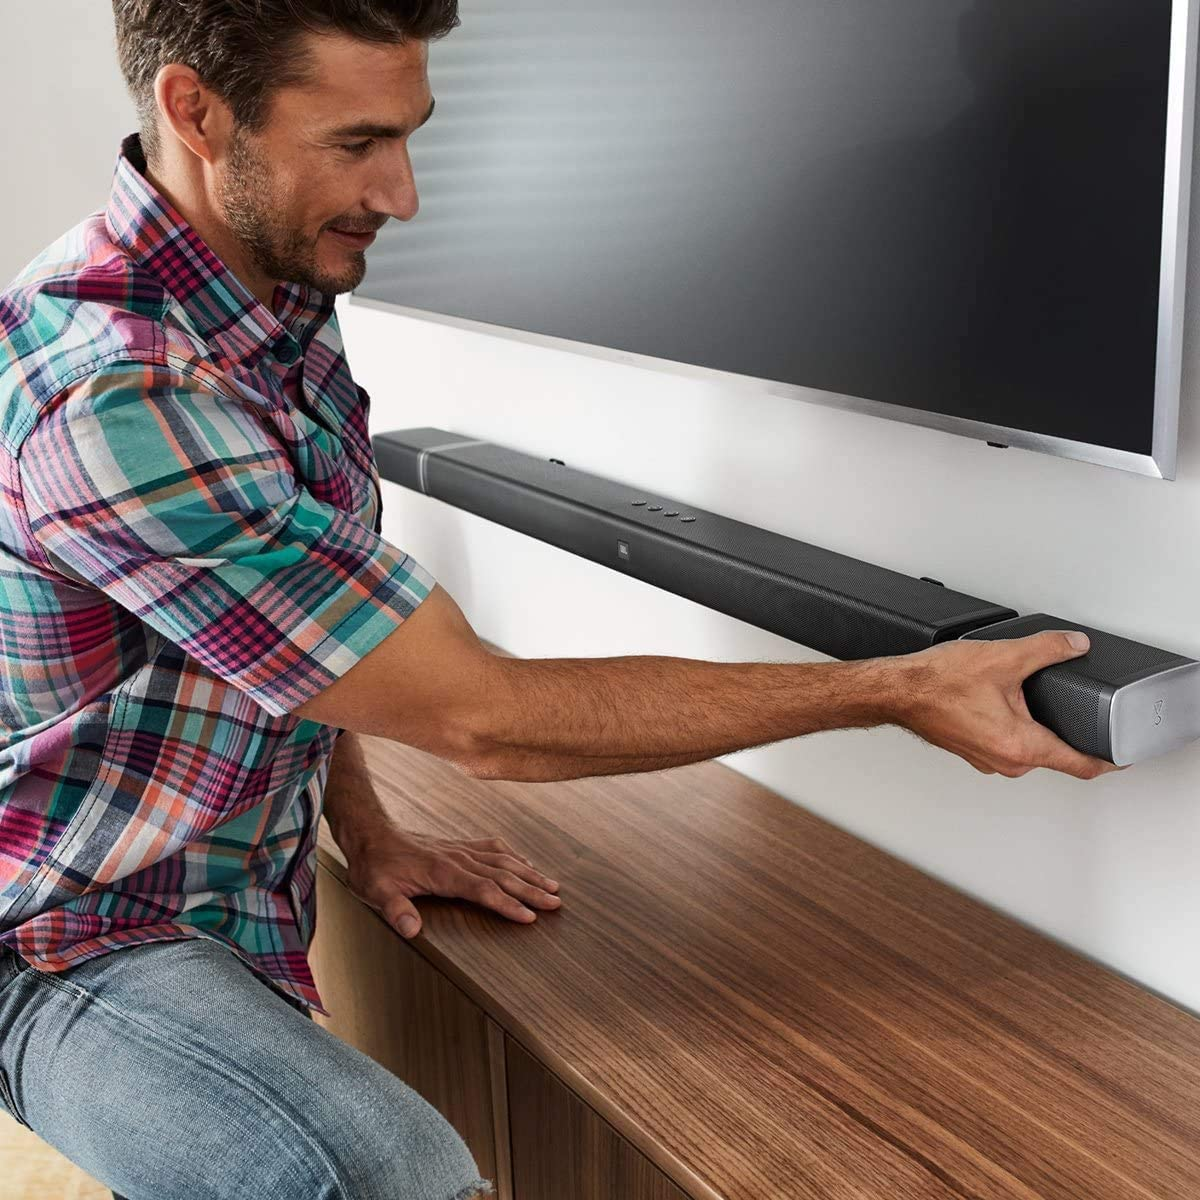 JBL 5.1 soundbar review